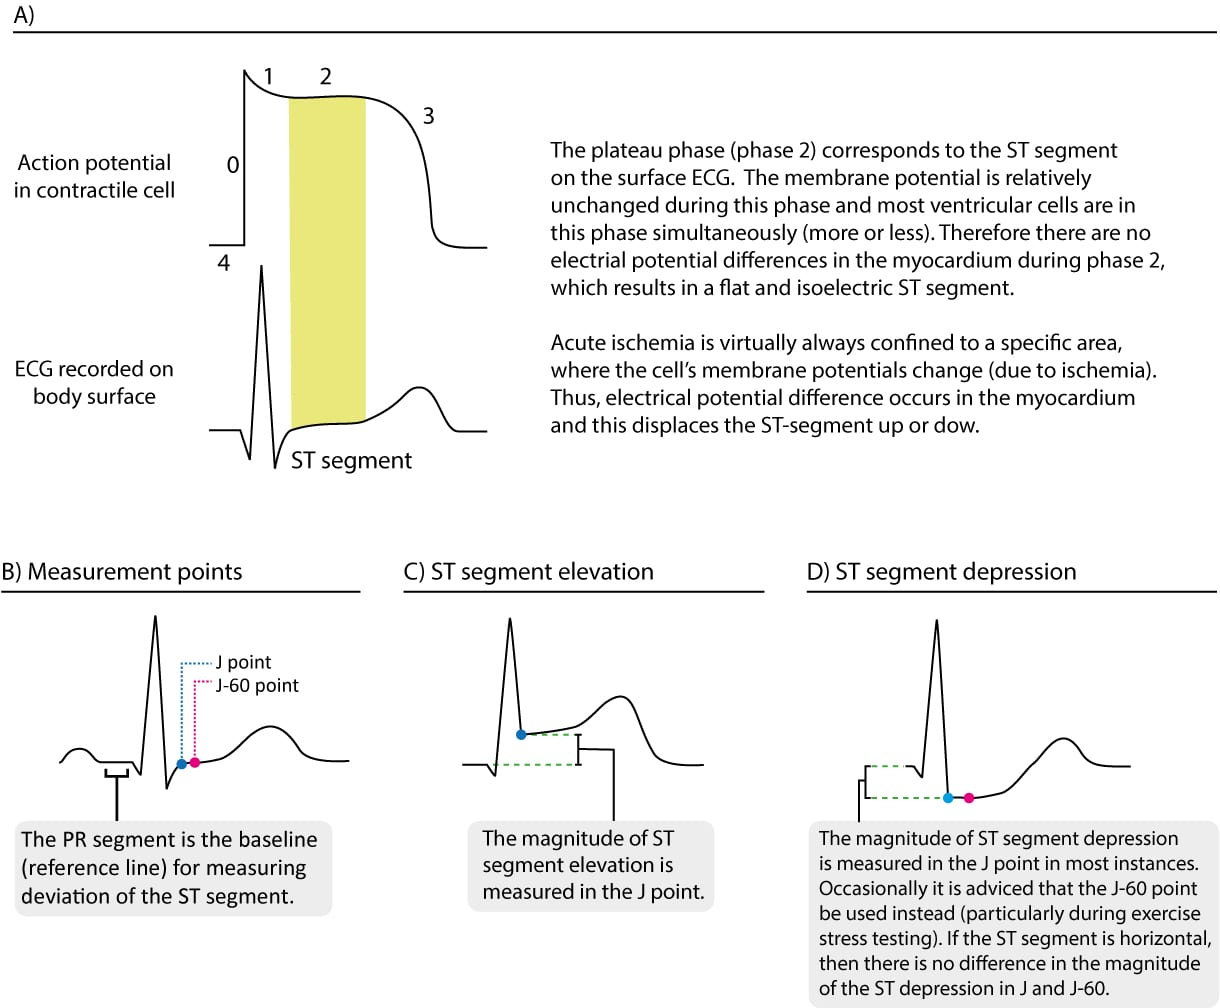 Figure 1. (A) The relation between the action potential and the ECG curve. Myocardial ischemia primarily affects the repolarization, which is reflected on ST-T changes on the ECG. (B) Note that the reference level for measuring deviation (elevation or depression) of the ST segment is the PR segment (the terminal portion of the PR interval). (C) and (D) Shows how to measure the magnitude of ST segment elevation and ST segment depression. The J 60 point is located 60 ms after the J point.